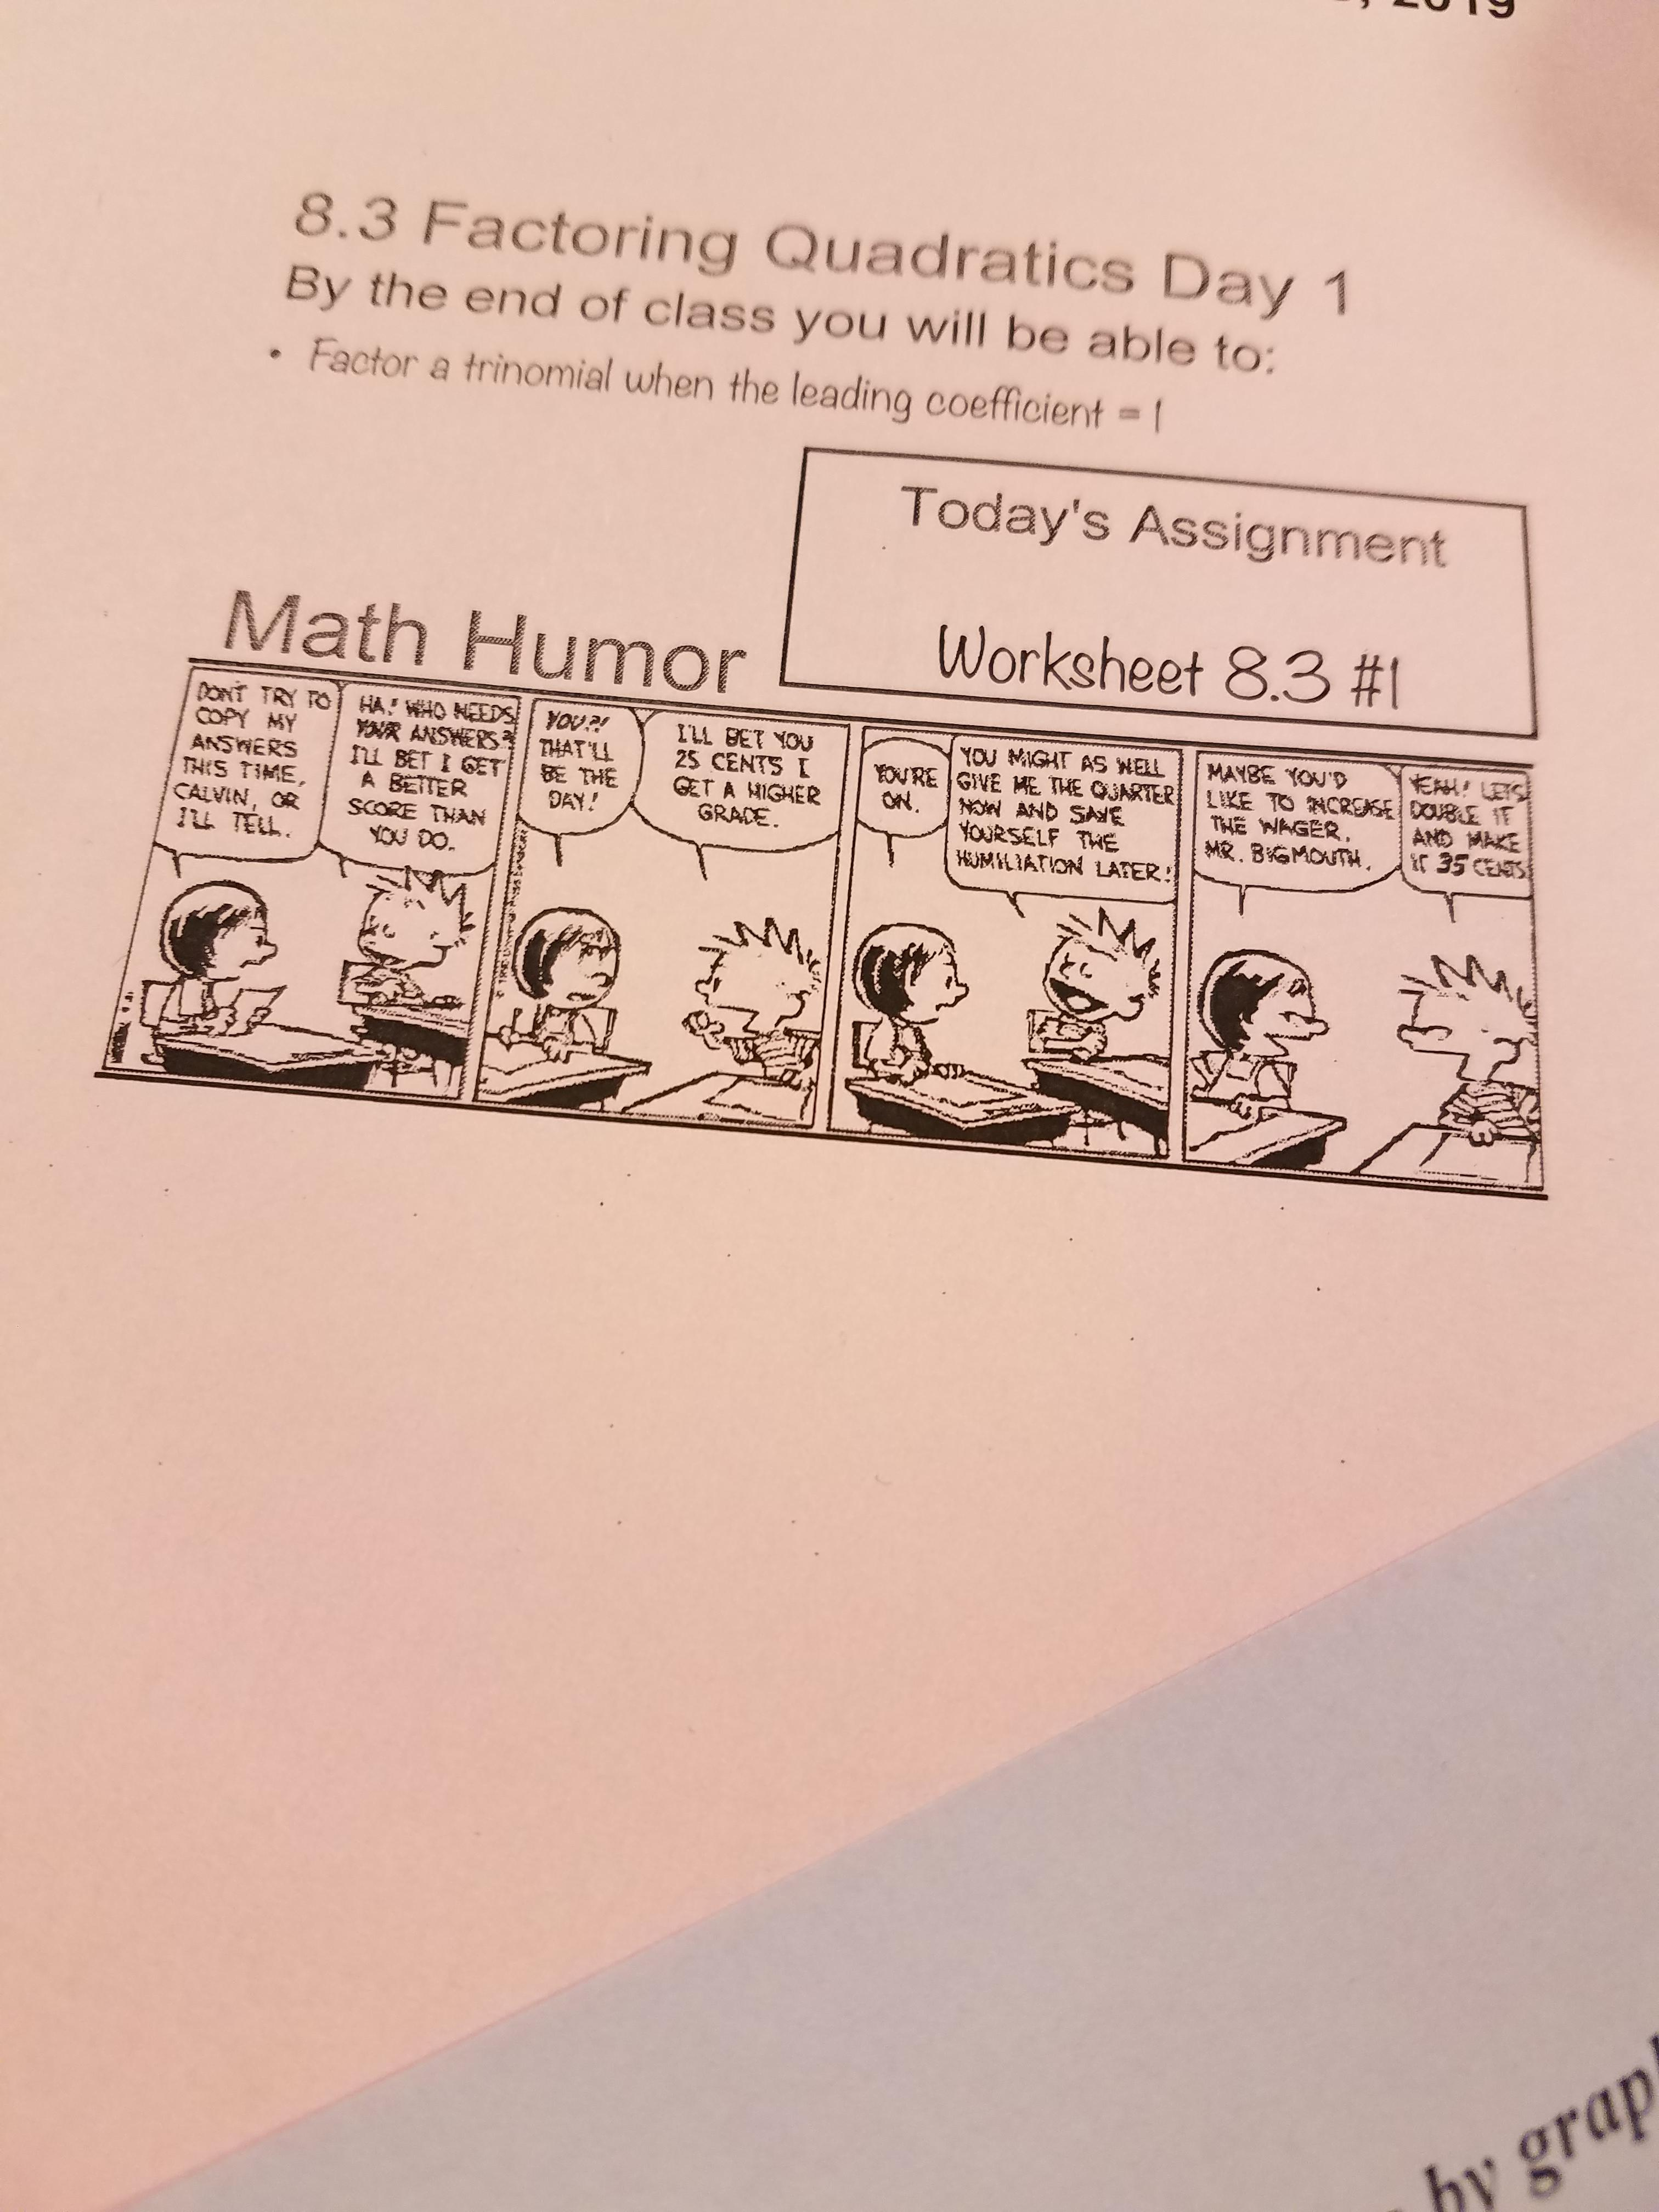 My Algebra Teacher Out A Calvin And Hobbes Comic Strip On